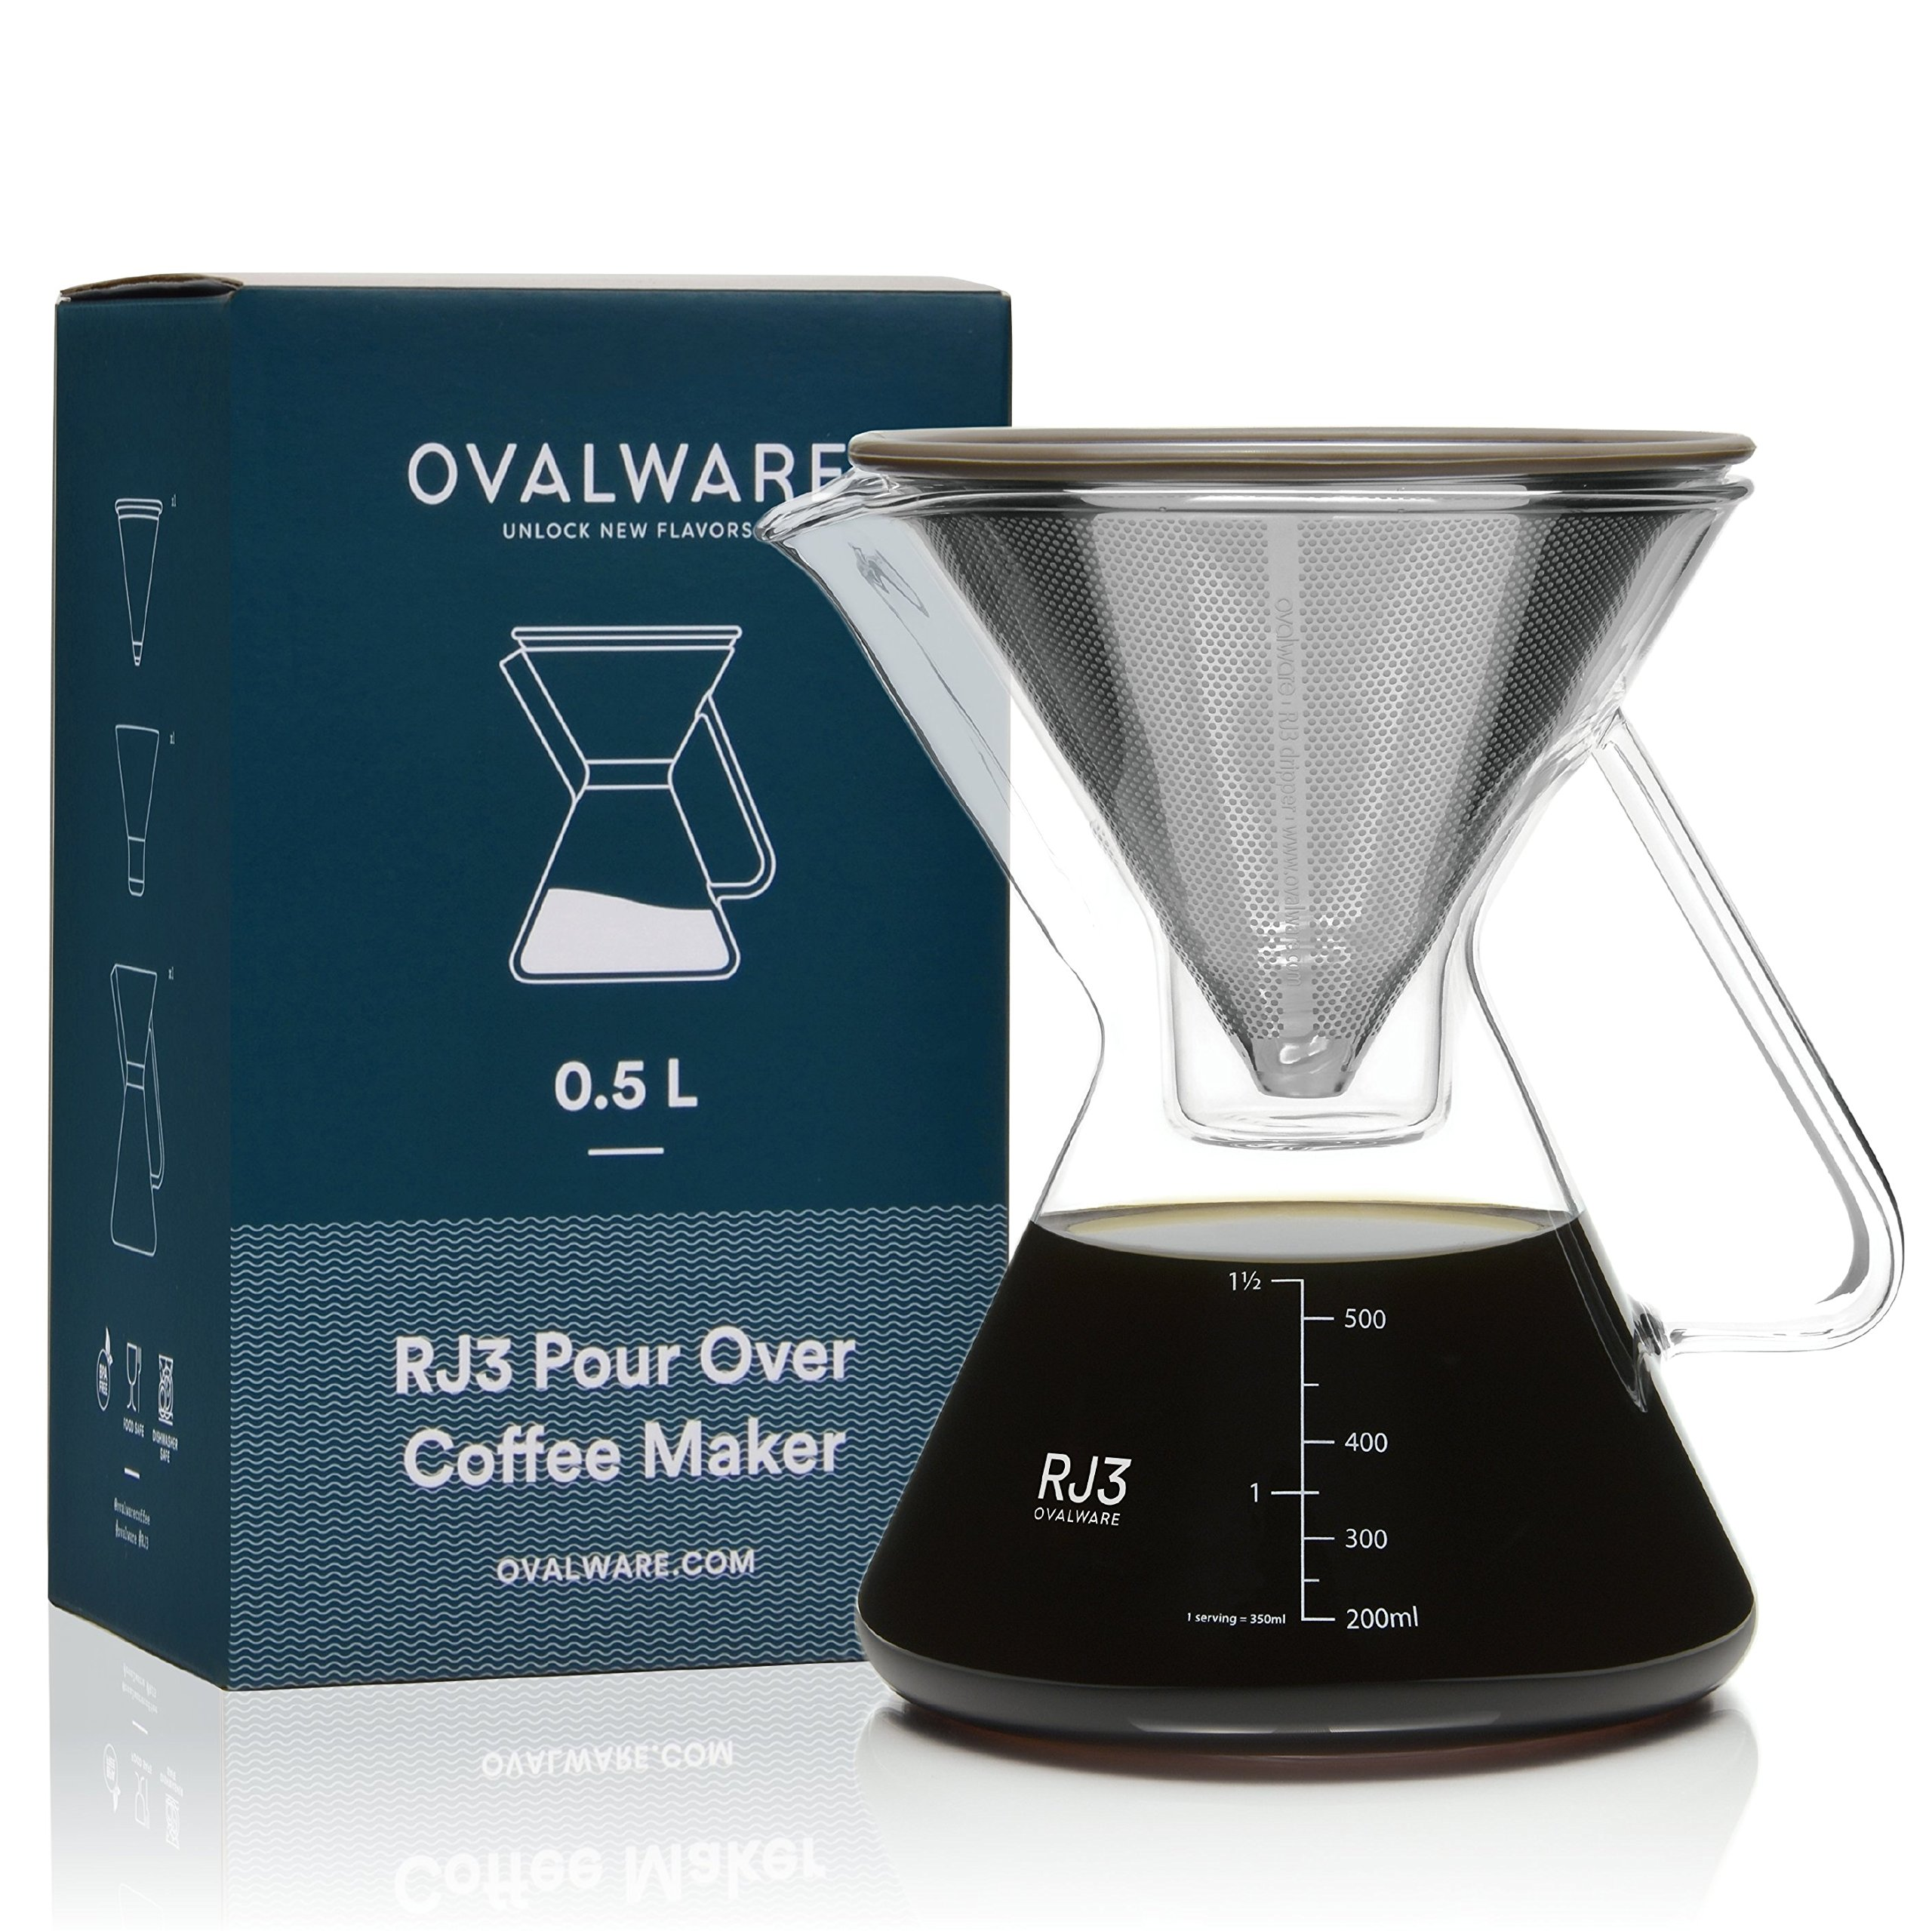 Pour Over Coffee Dripper - Unlock New Flavors with Paperless Stainless Steel Filter, Precision Measuring Cup and Carafe - 0.5L / 17oz by ovalware